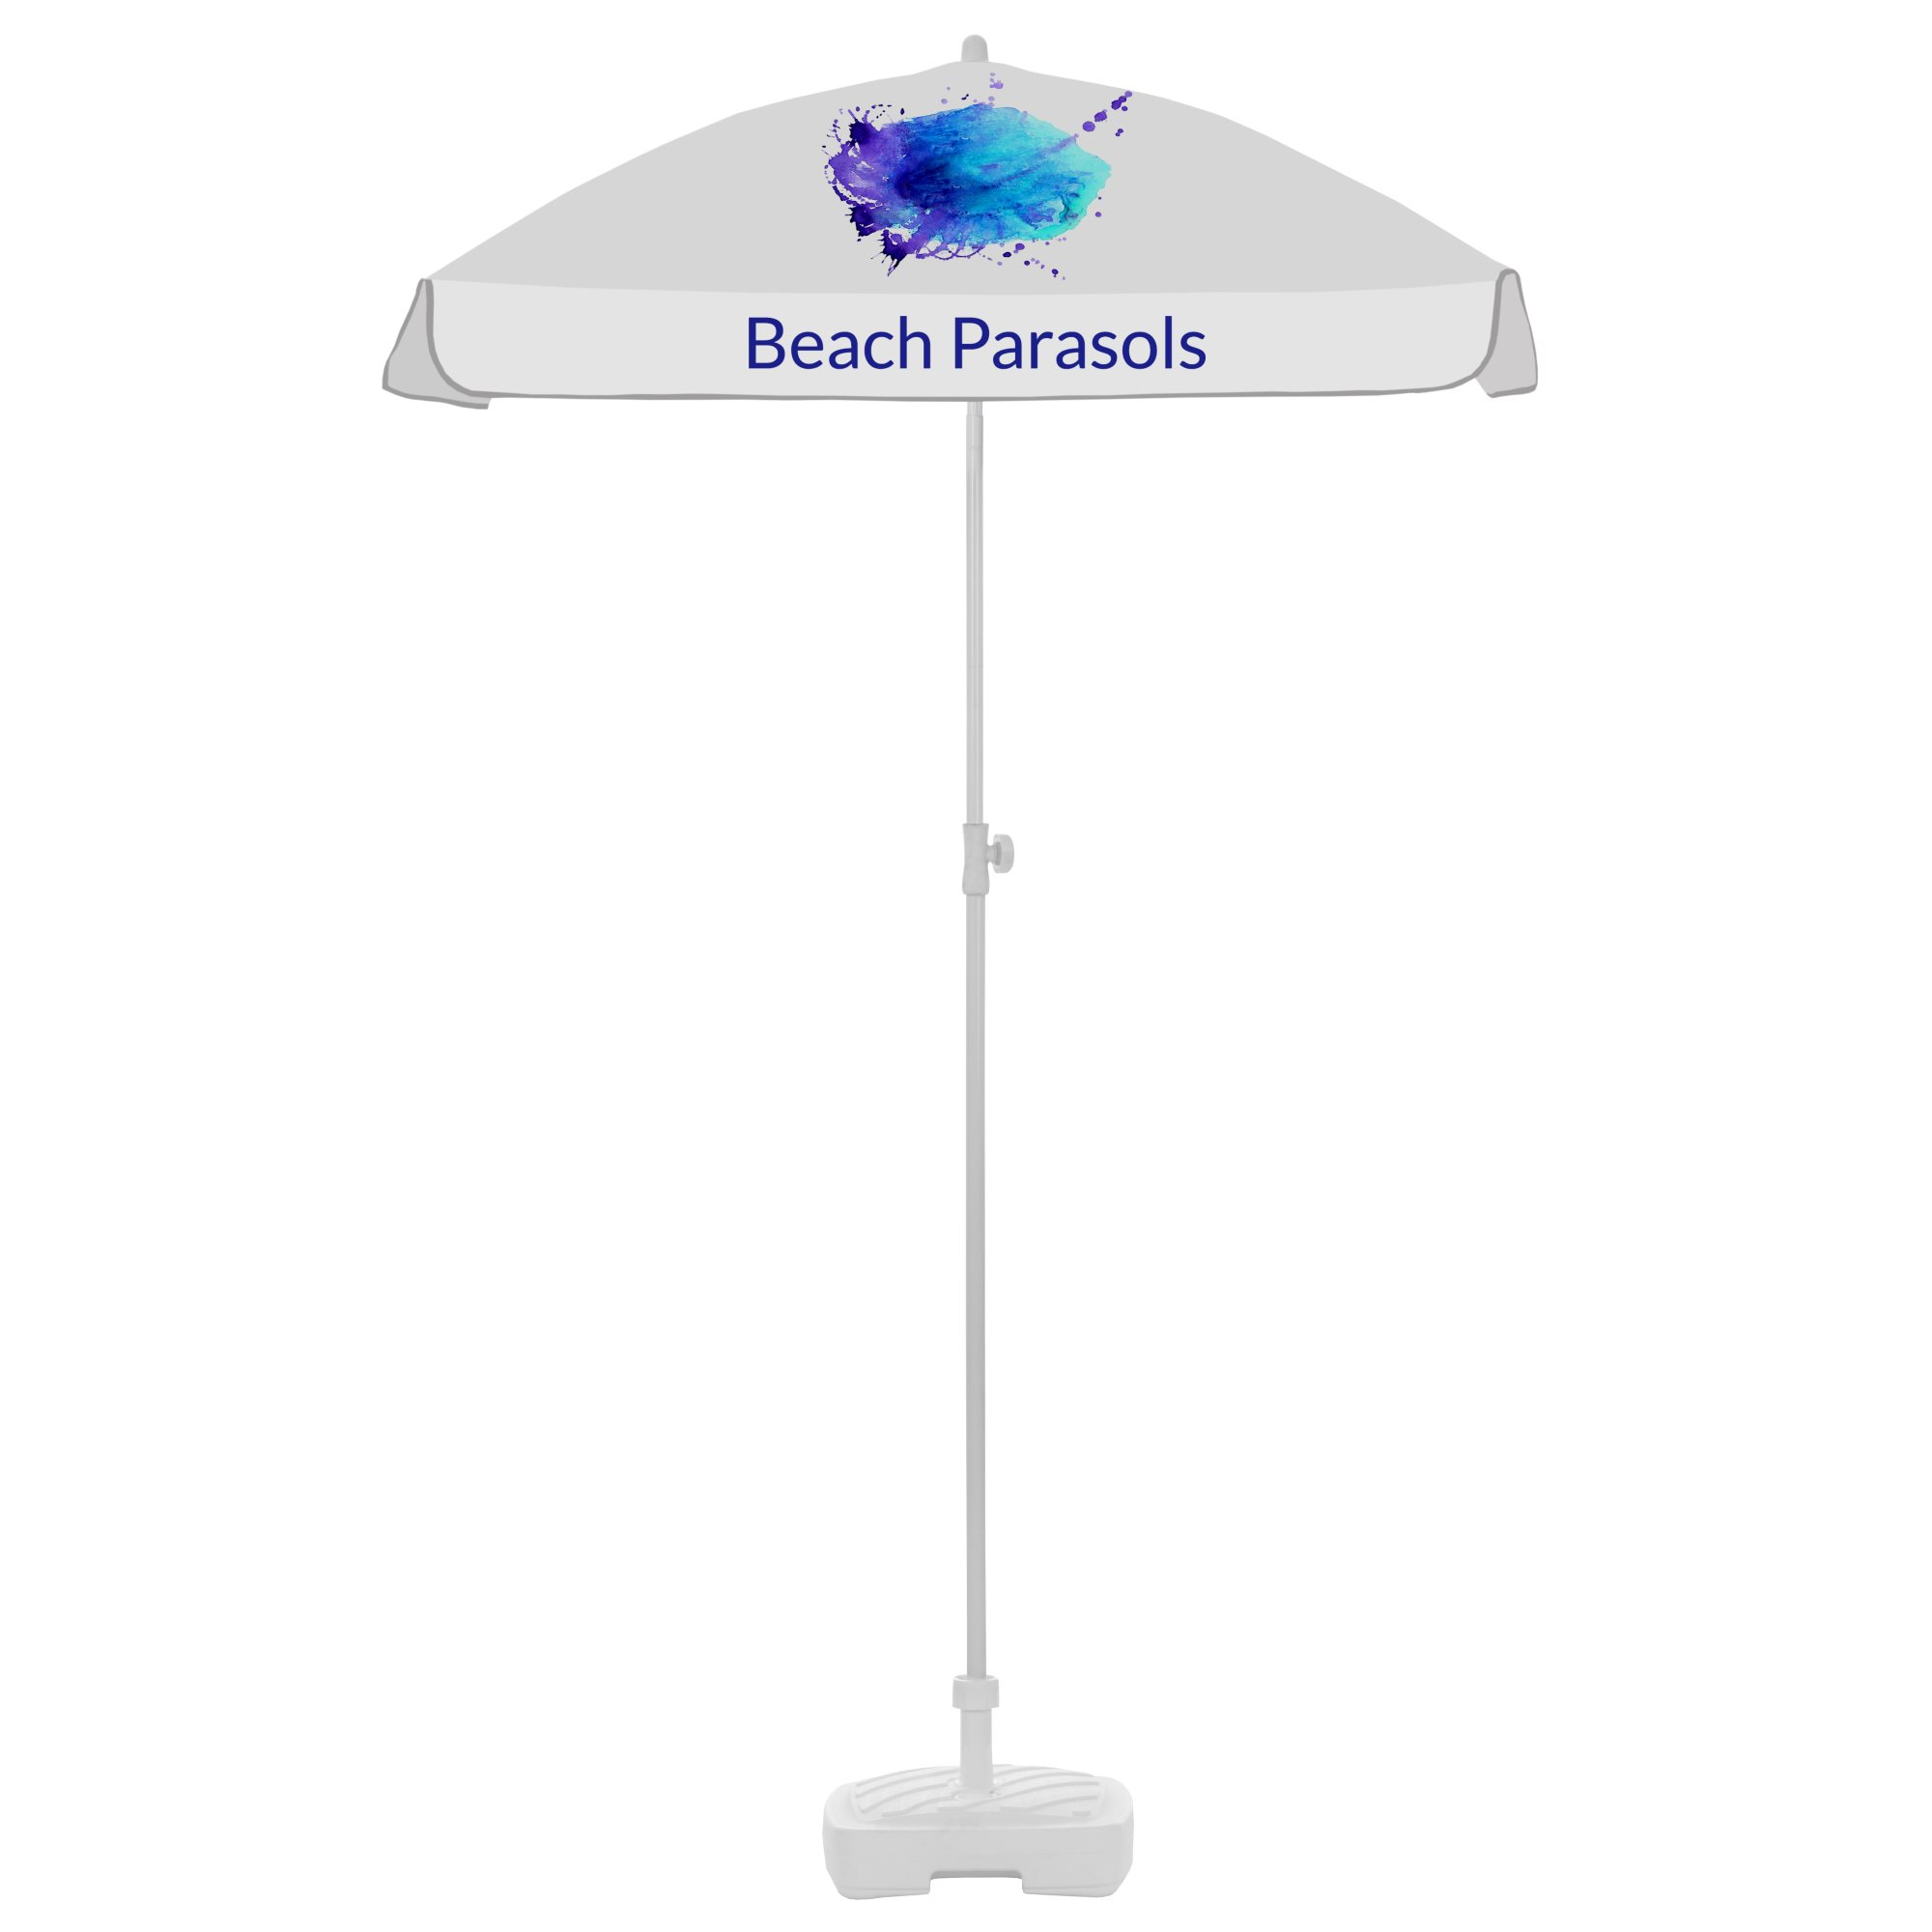 6. Beach Parasols Square 1,25m with fairing